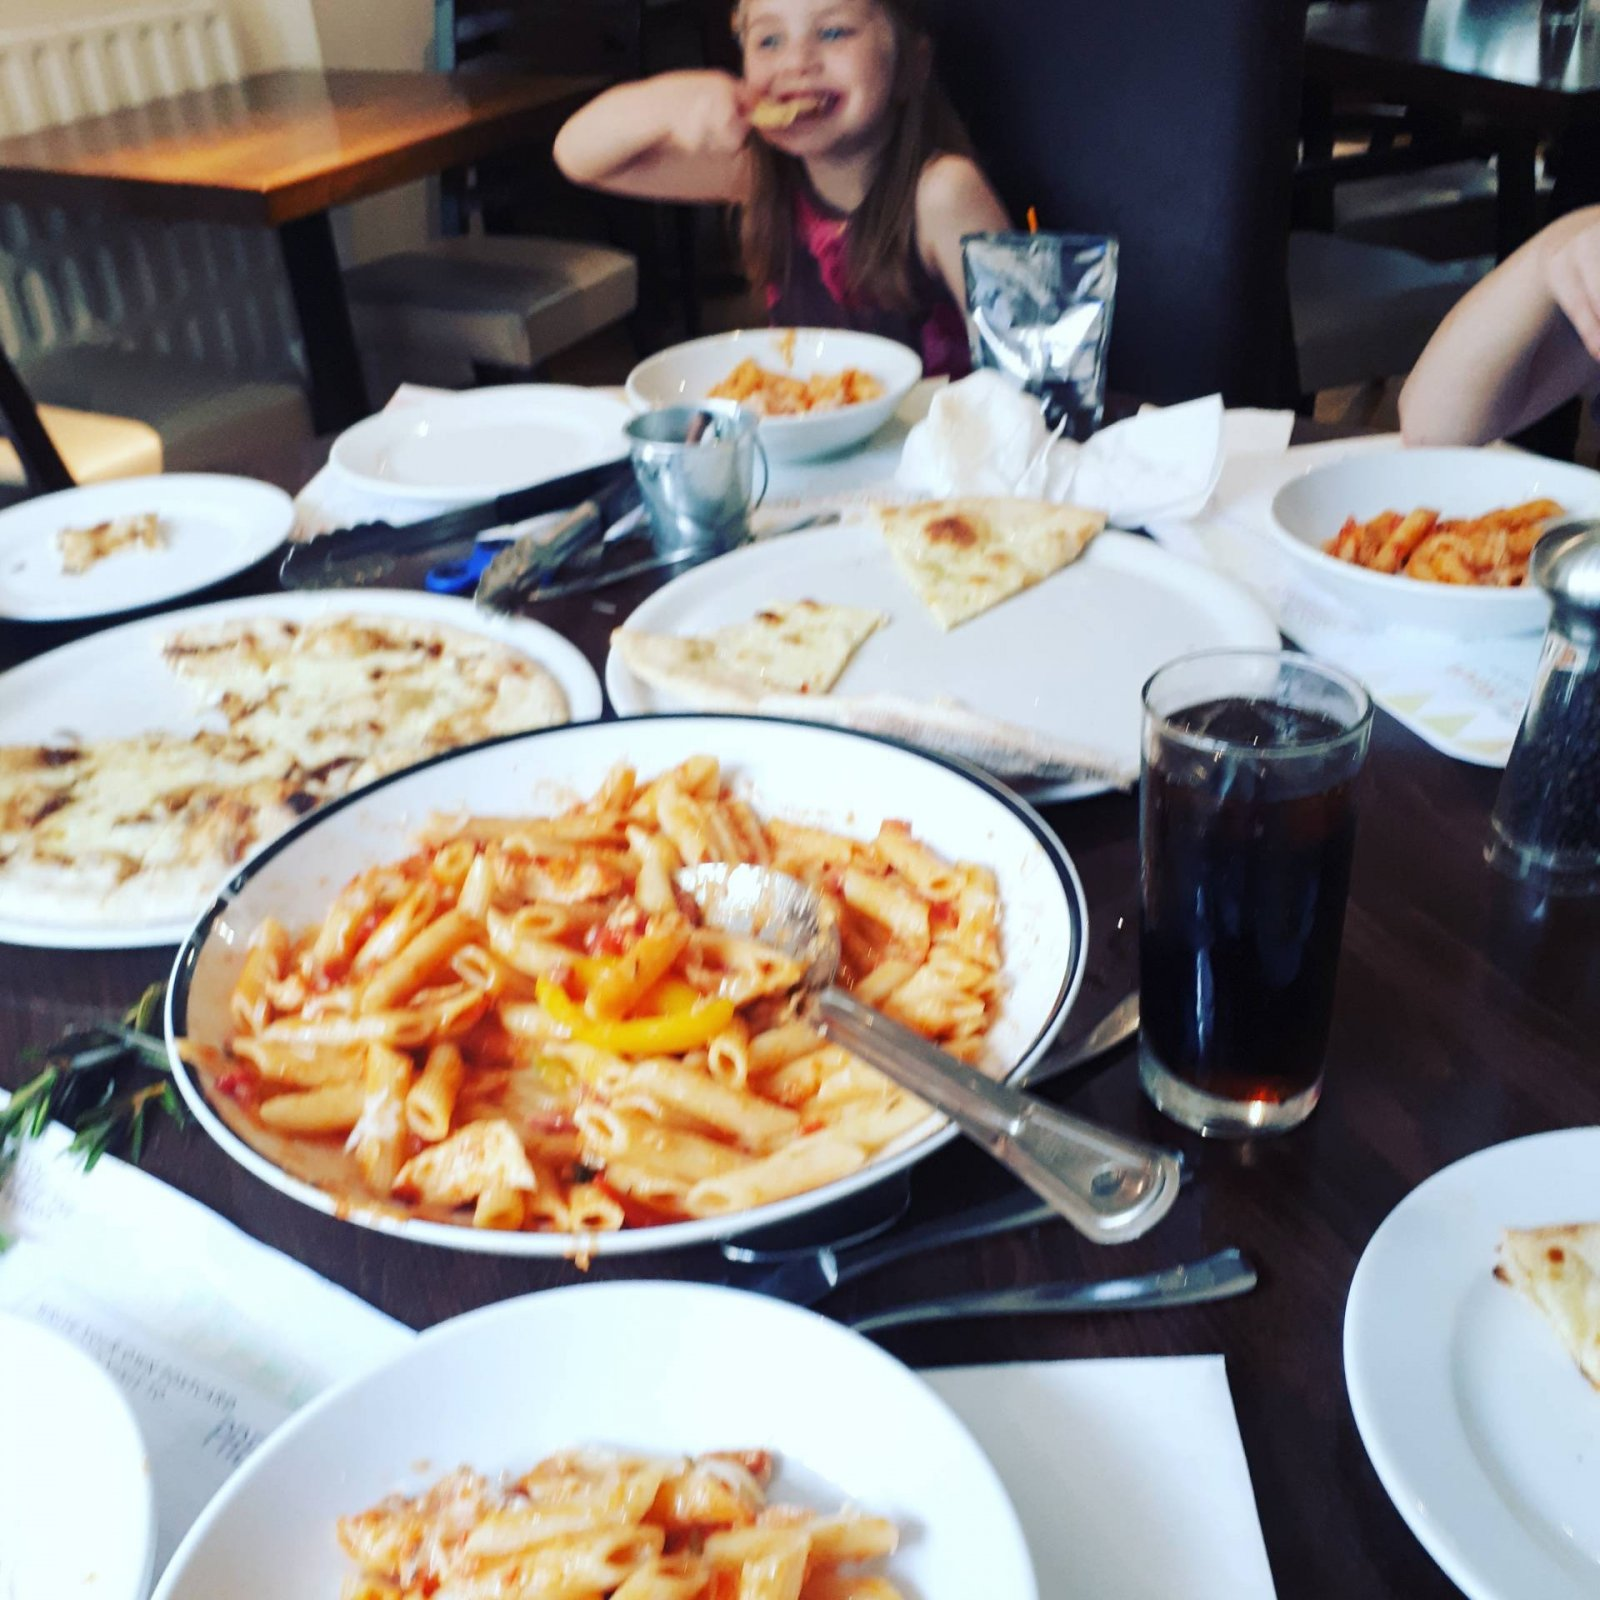 The  #PrezzoLaFamiglia Challenge – Family dining